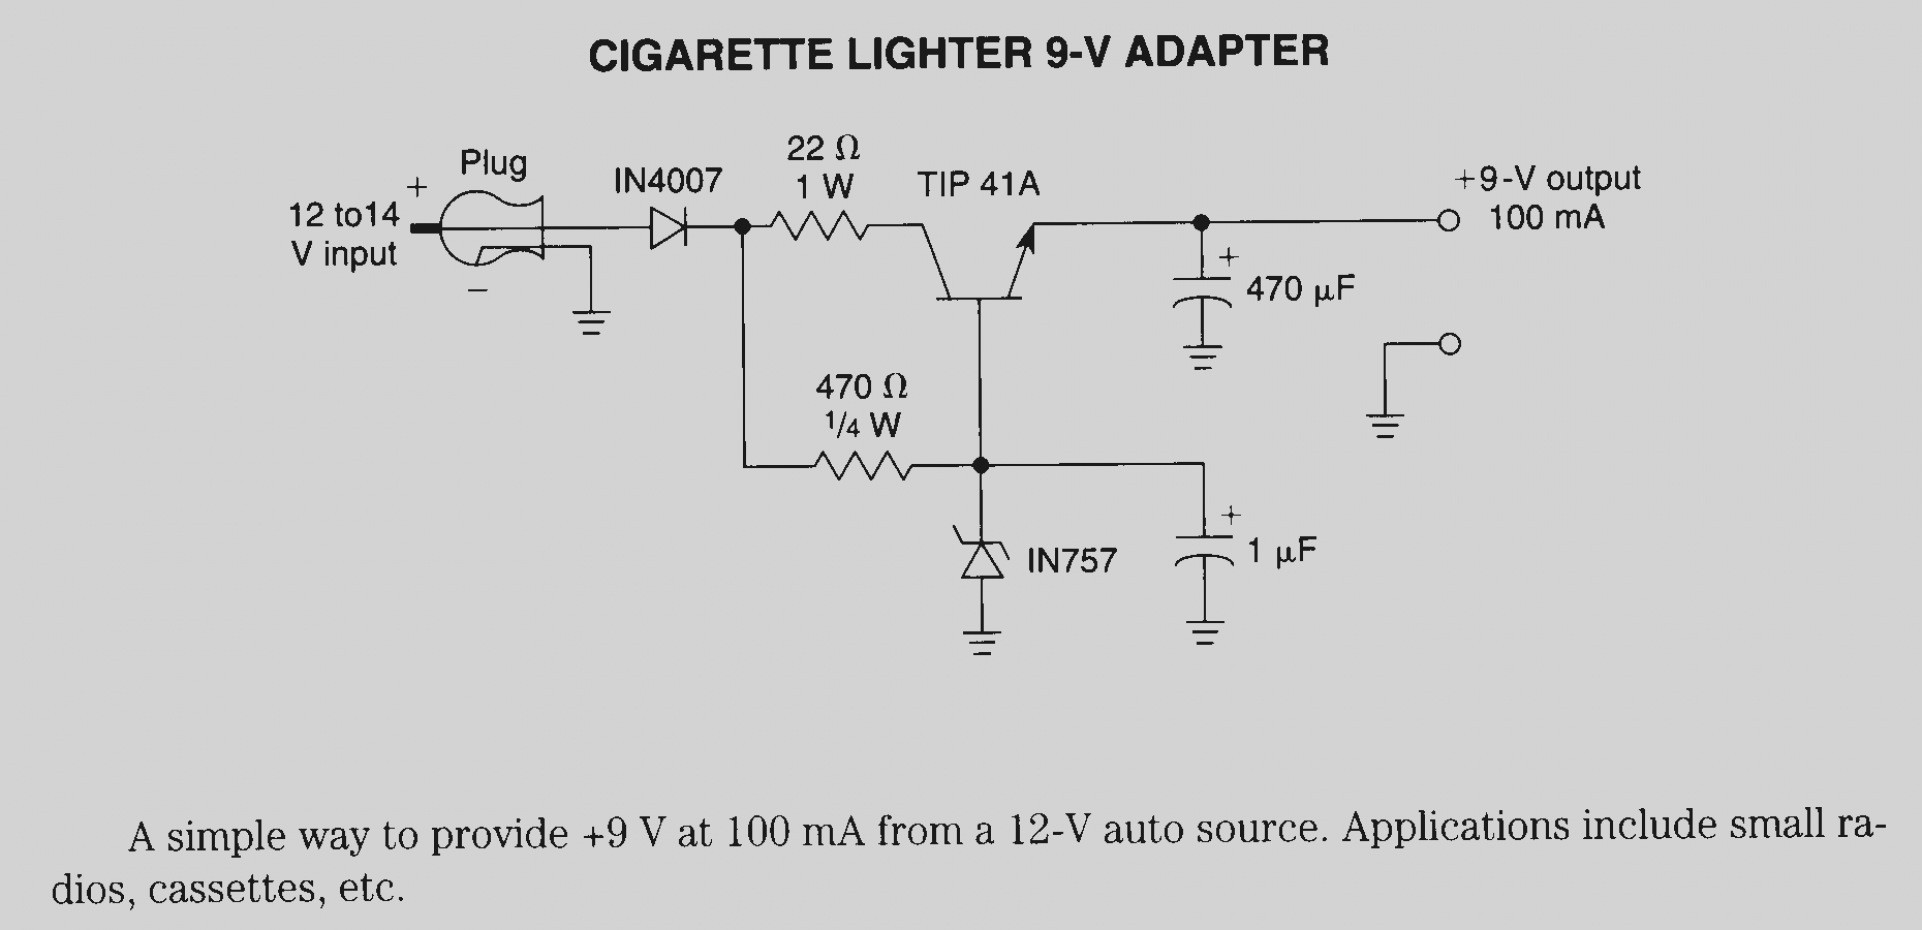 Car Cigarette Lighter Wiring Diagram 12v Best Image 2018 Chart Gallery